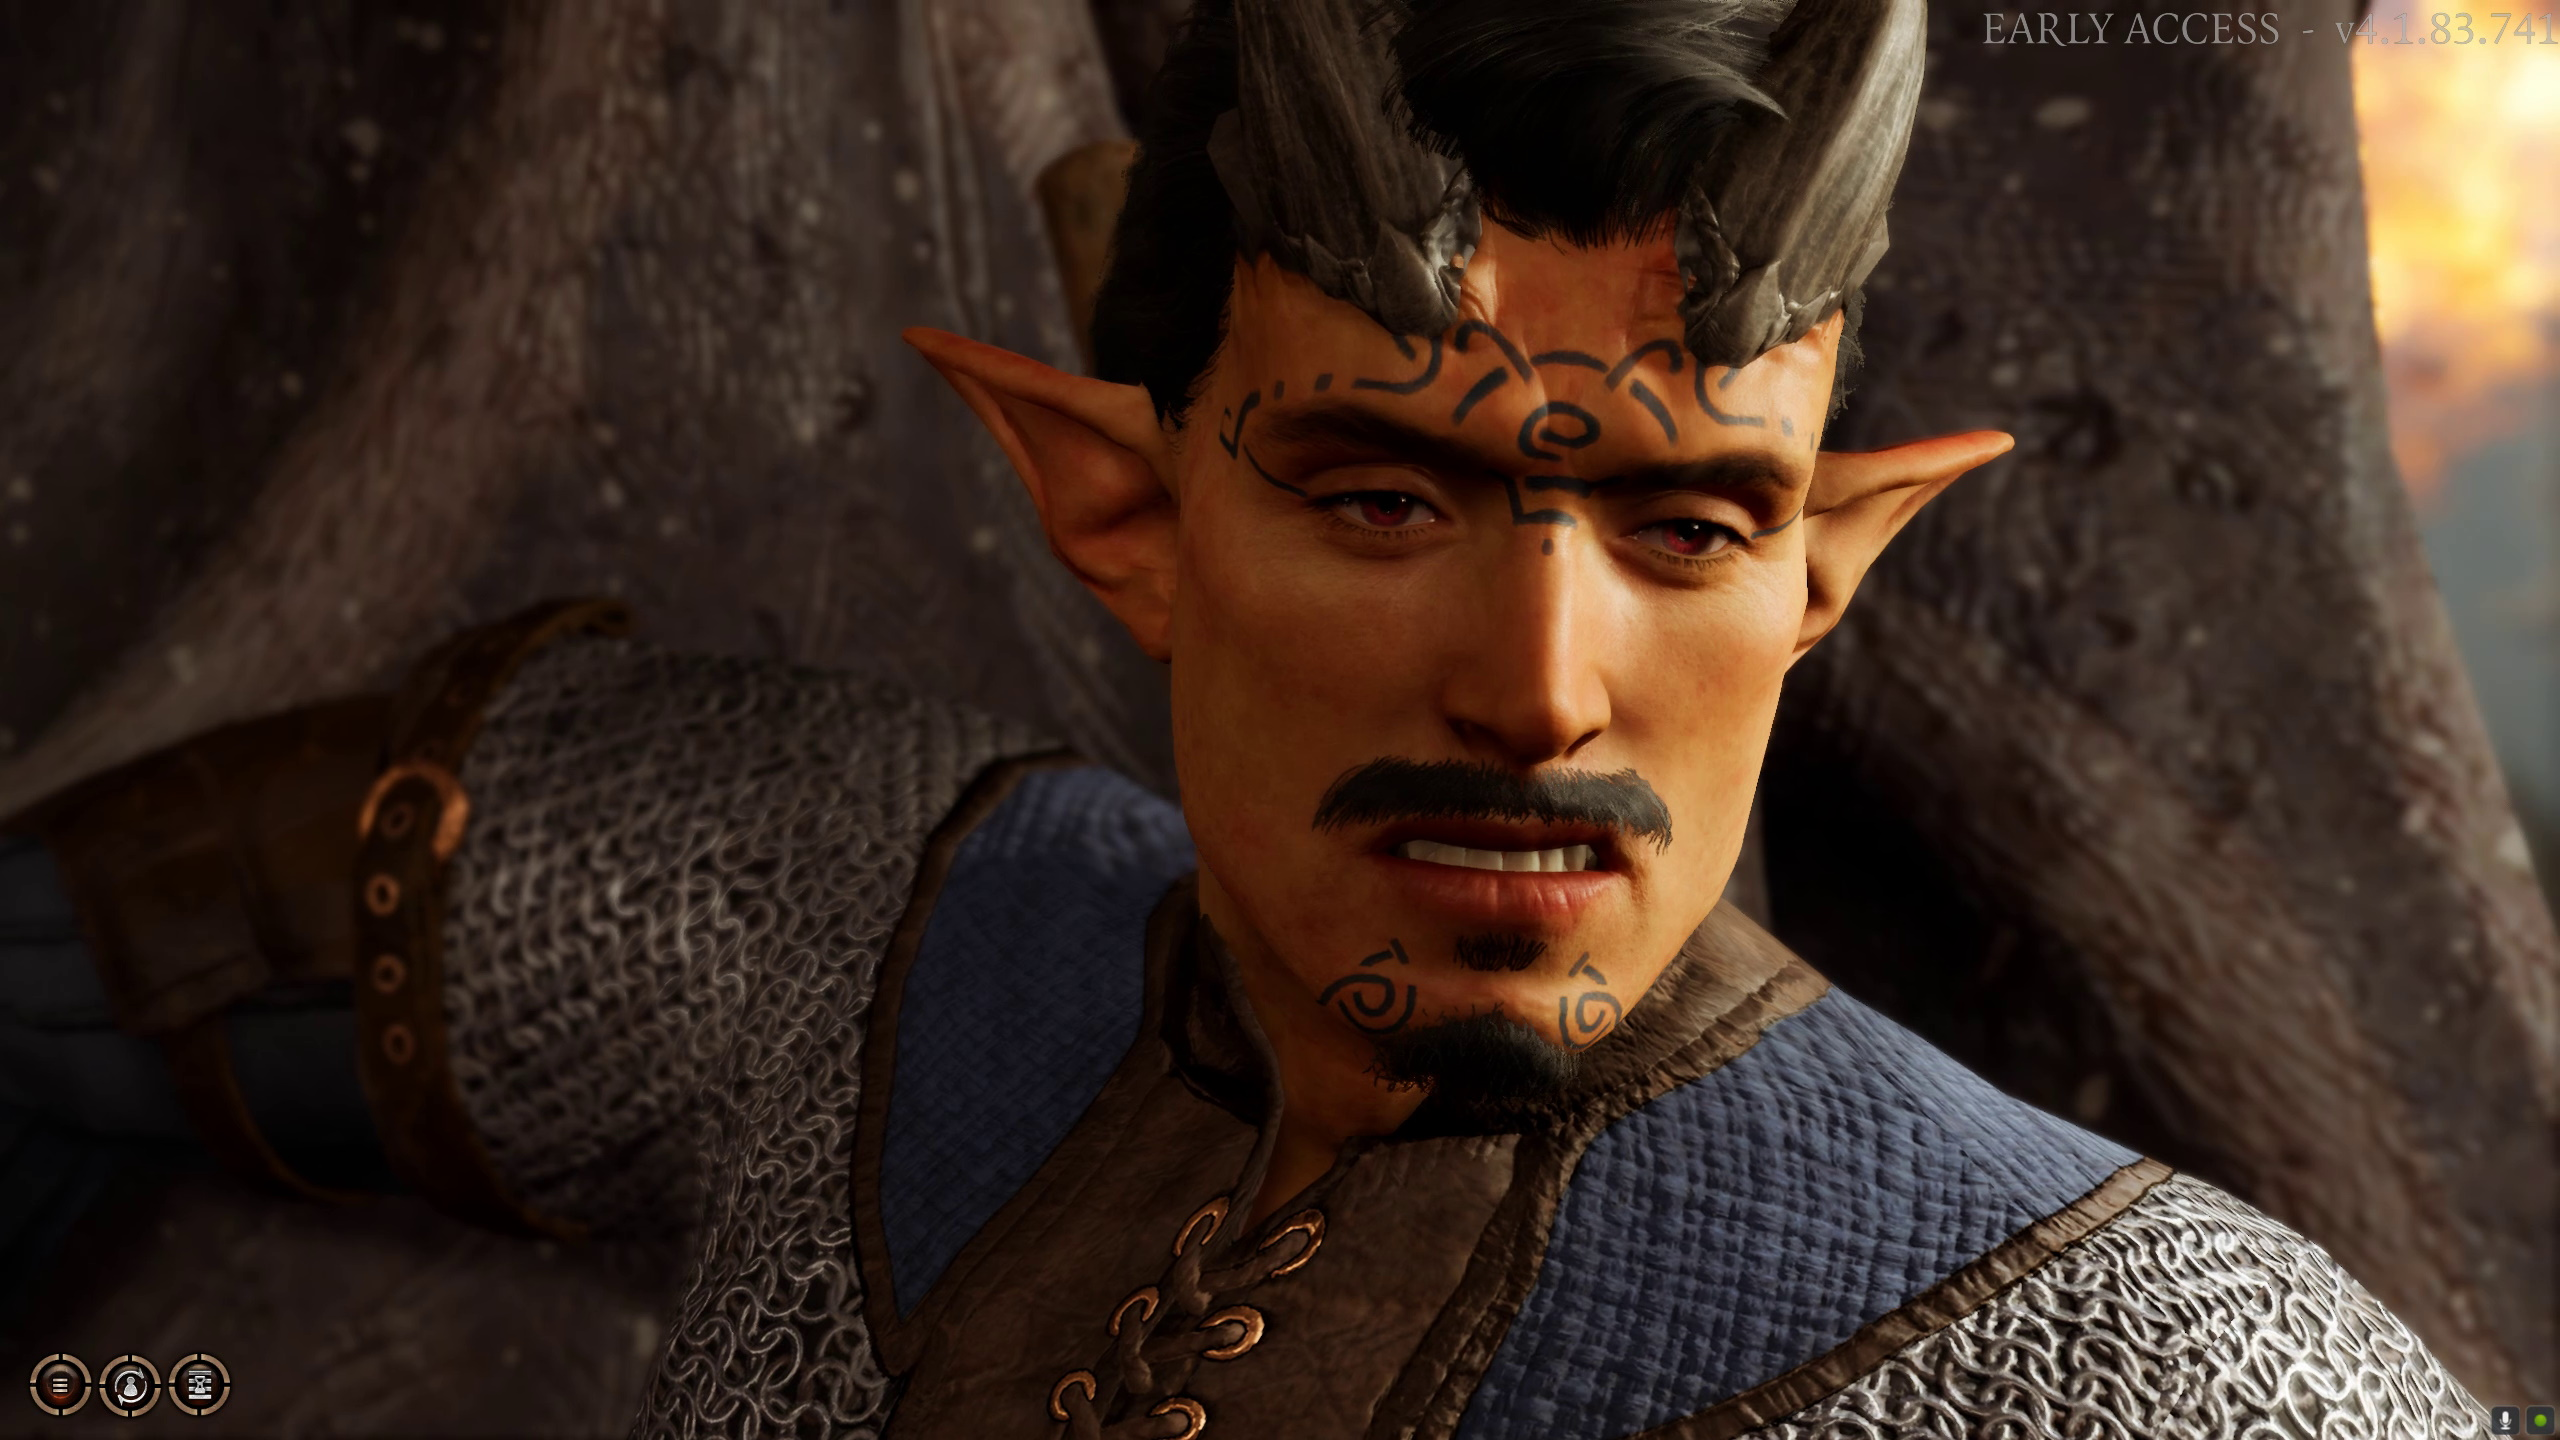 A screenshot of Matthew's custom player character in Baldur's Gate 3, a very smug looking Tiefling male, with a moustache and soul patch goatee, pointed ears, and big black horns protruding from his forehead and back over his skull.